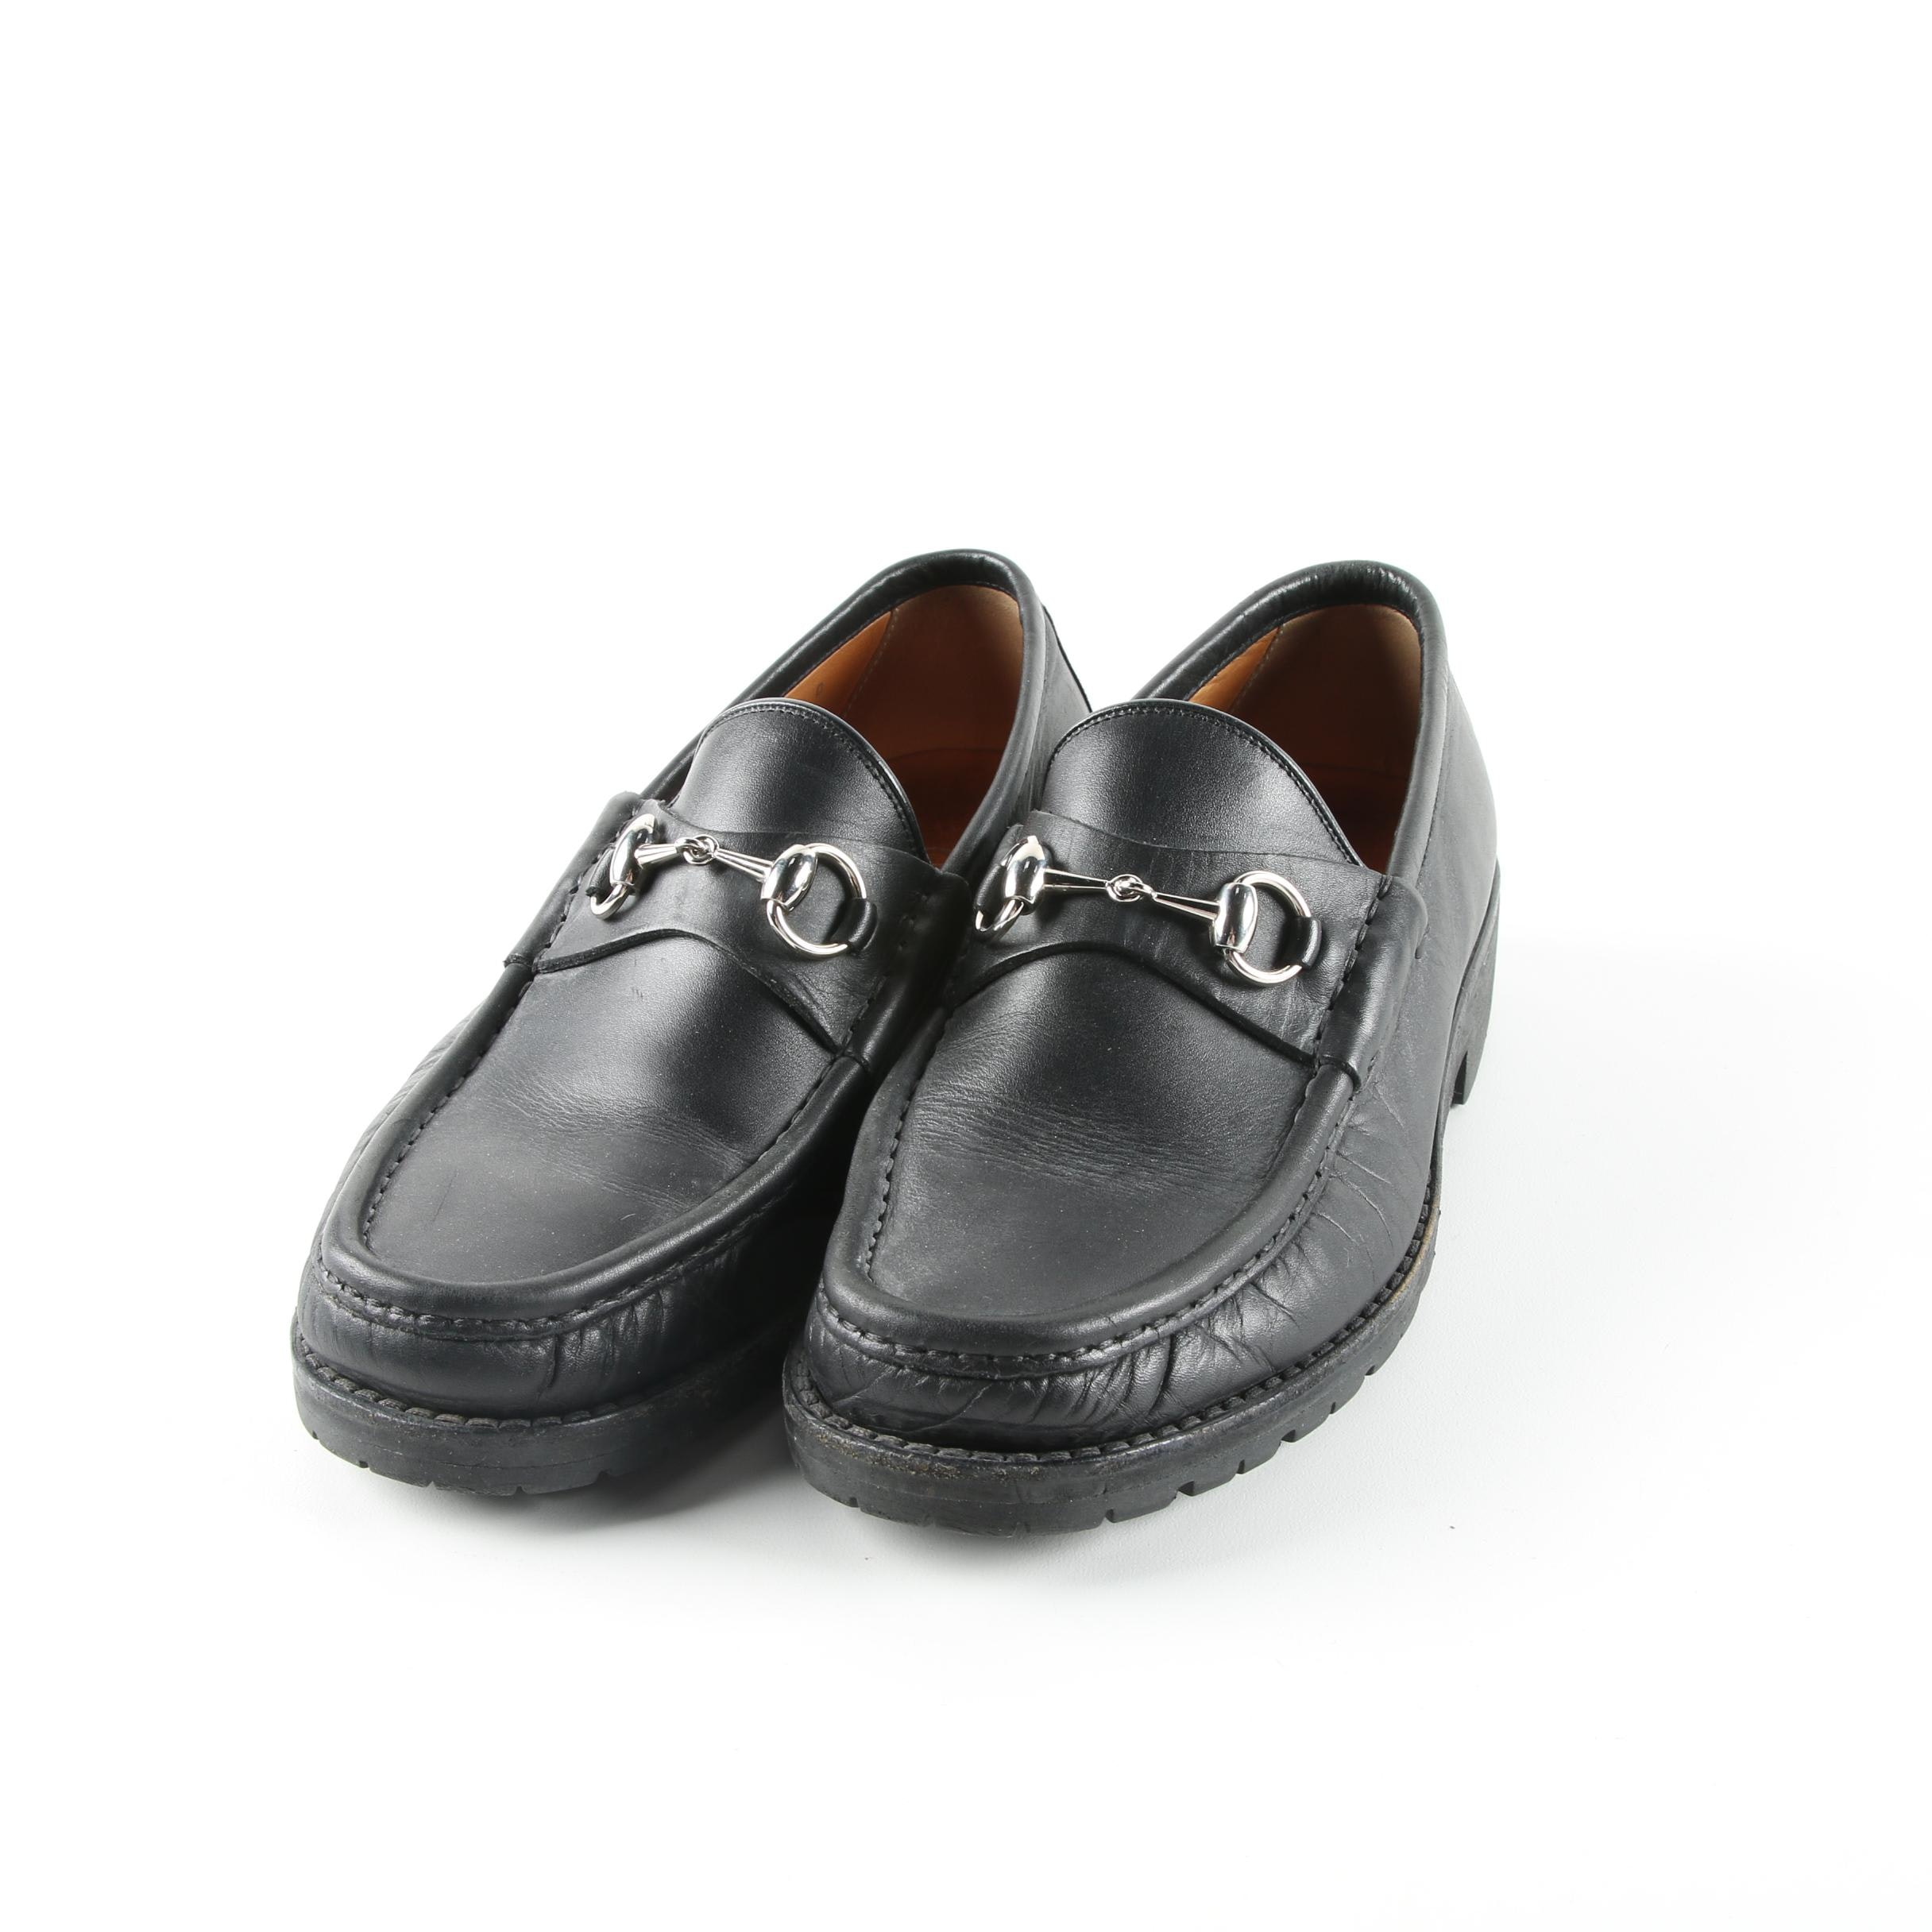 Men's Gucci Black Leather Horsebit Loafer